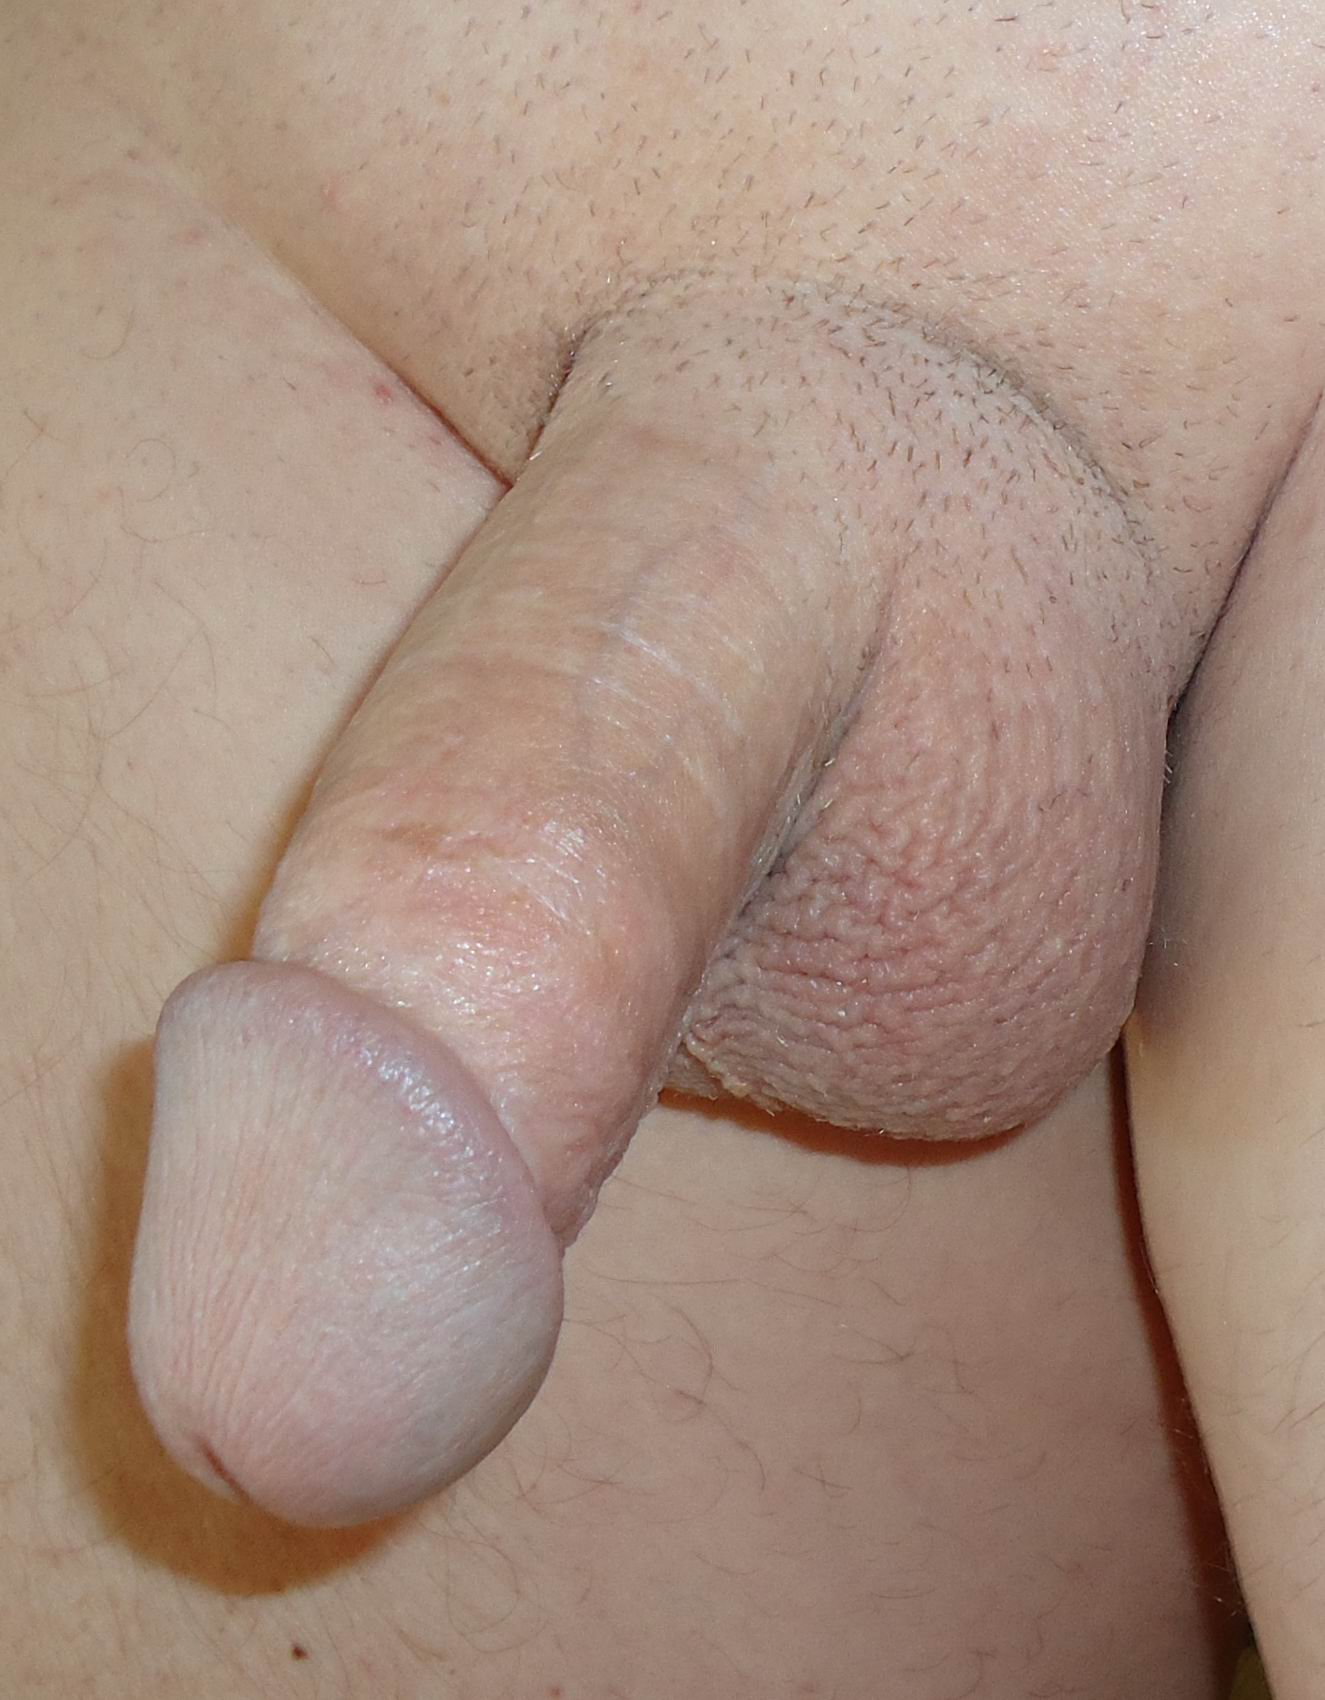 Description Human penis shaved pubic.JPG